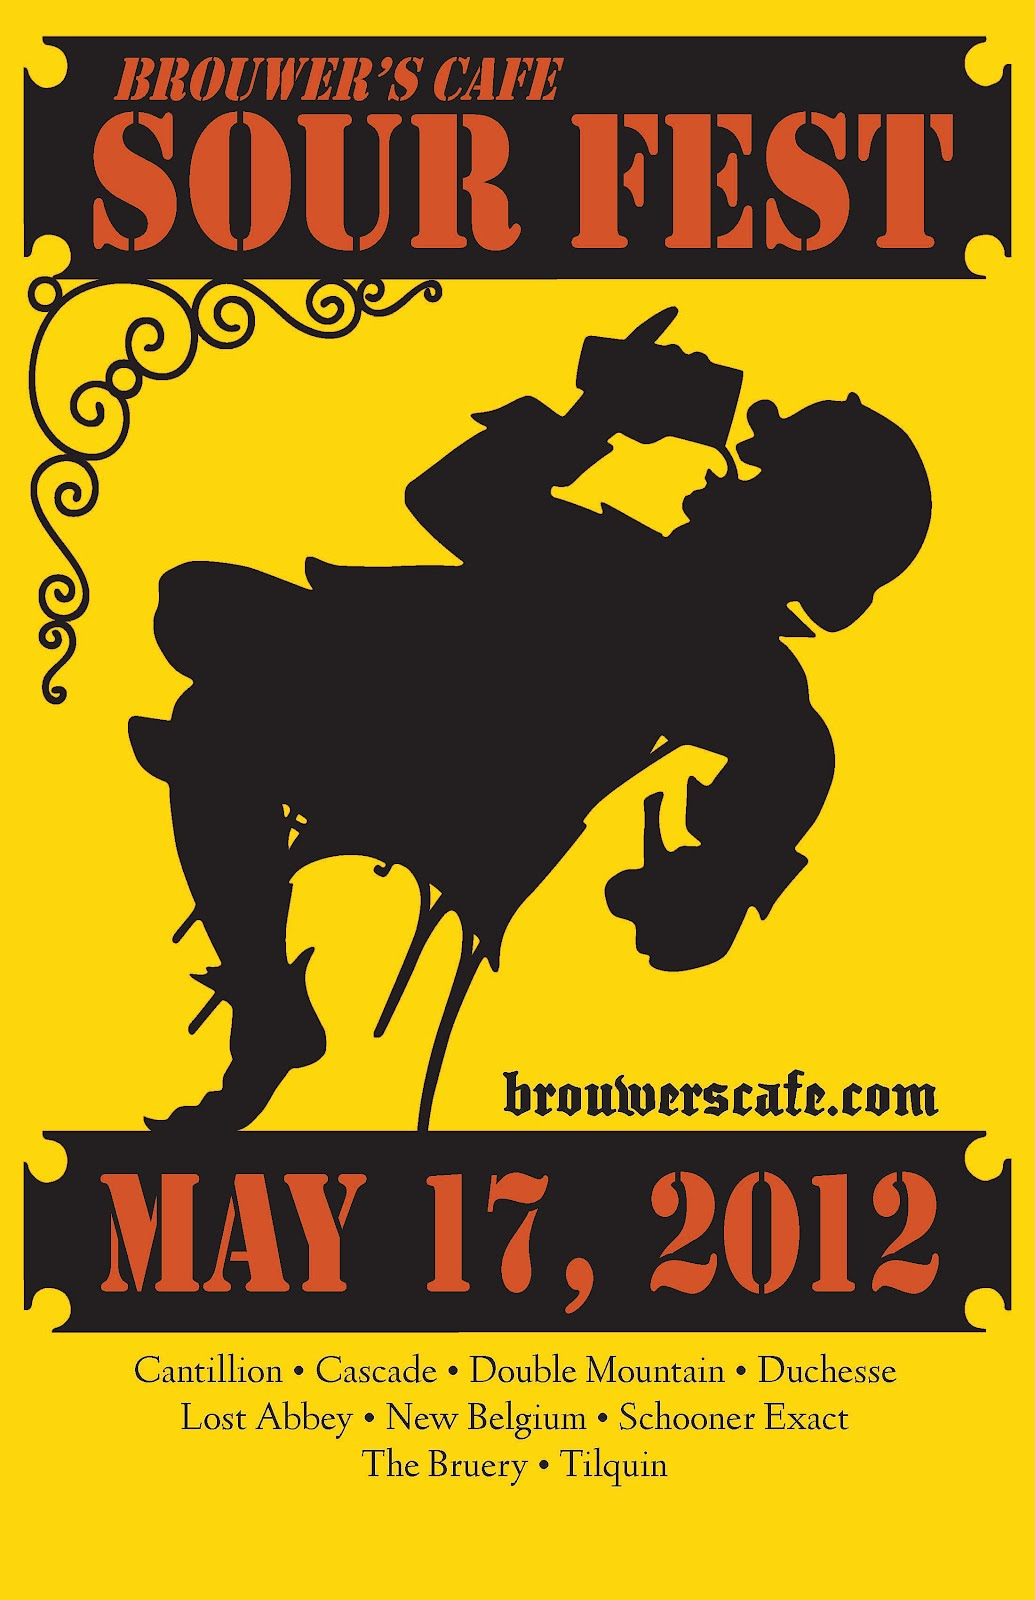 Seattle Beer Week!! – Brouwer's Cafe